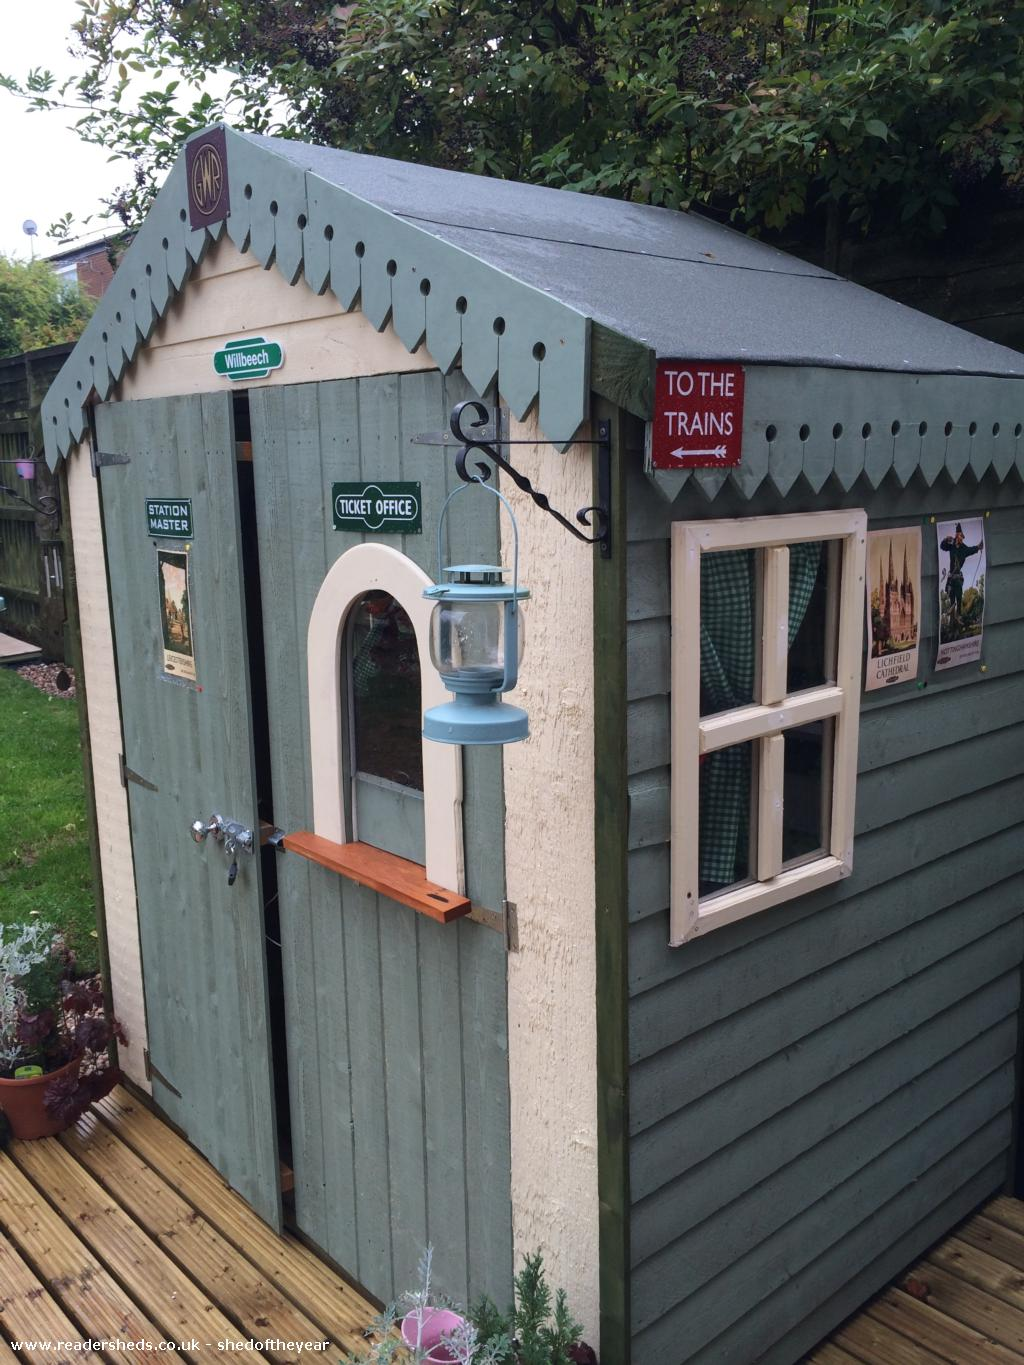 Willbeech Station Unexpected From Back Garden Owned By